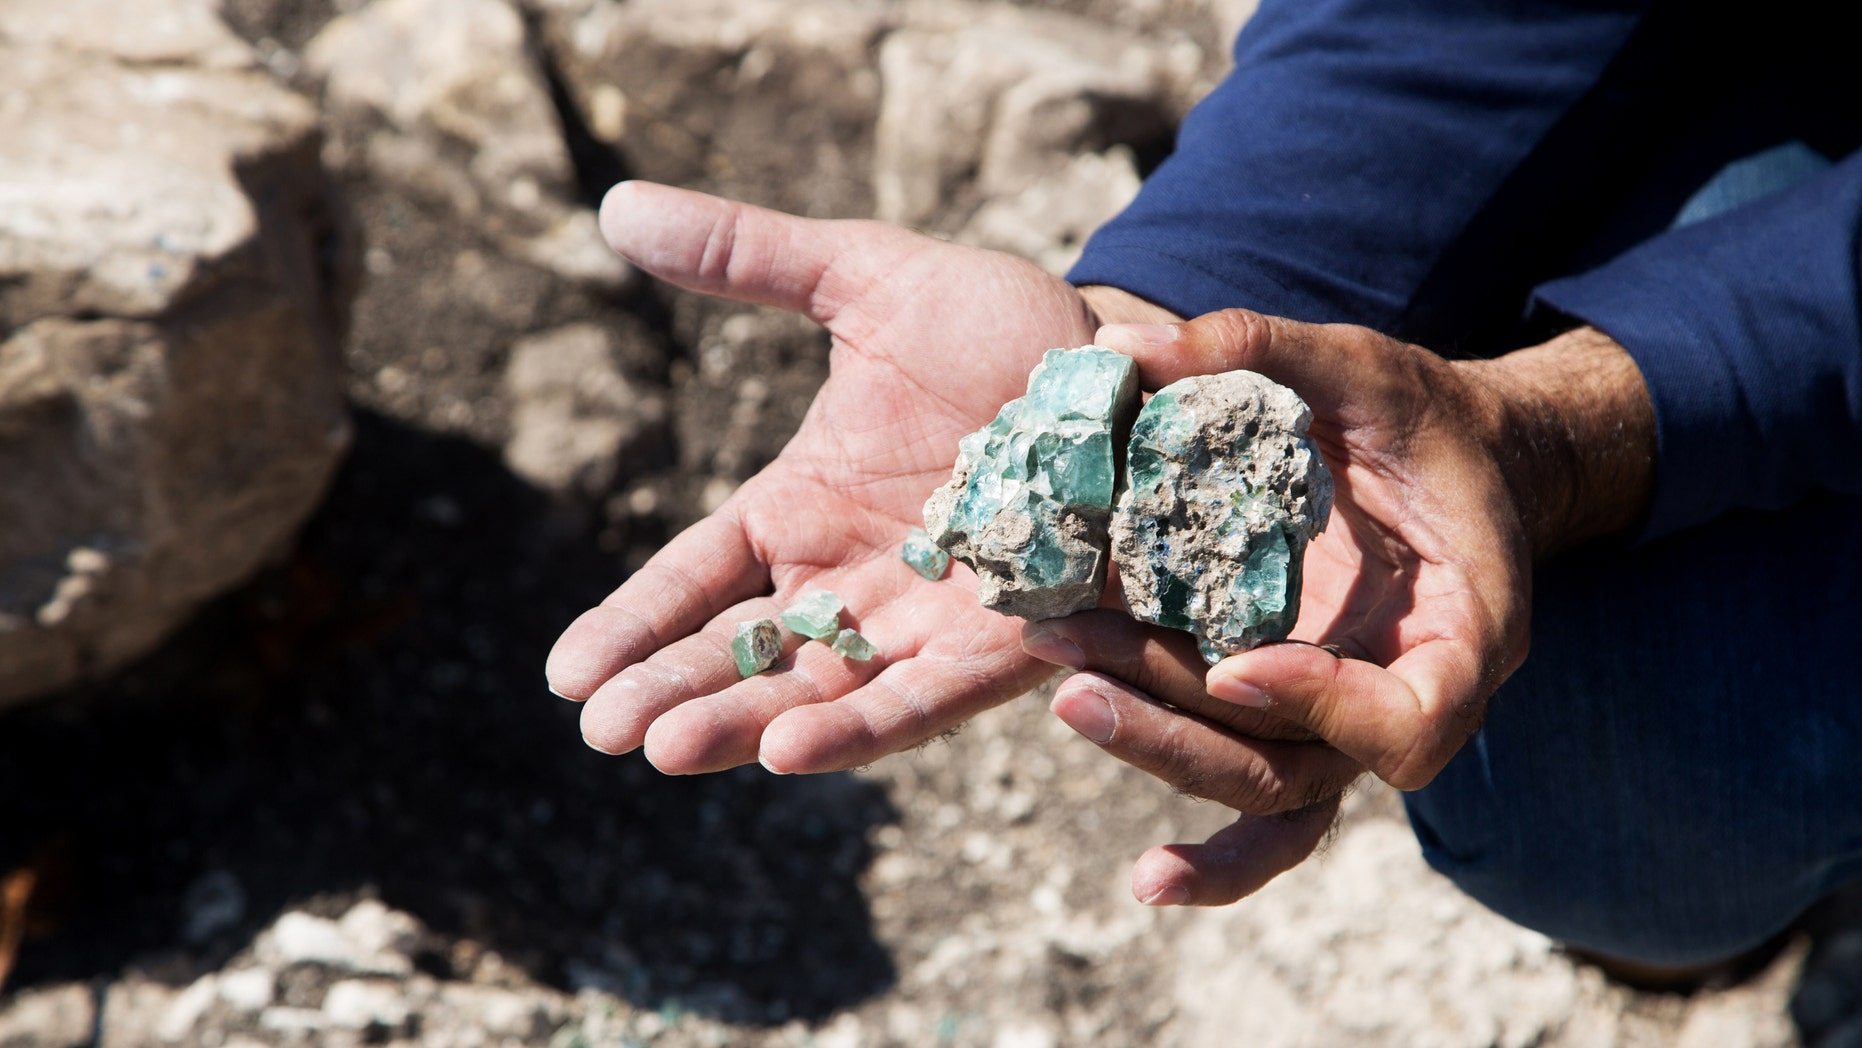 Small fragments of the raw glass as they were found at the site.(Photo: Assaf Peretz, courtesy of Israel Antiquities Authority)